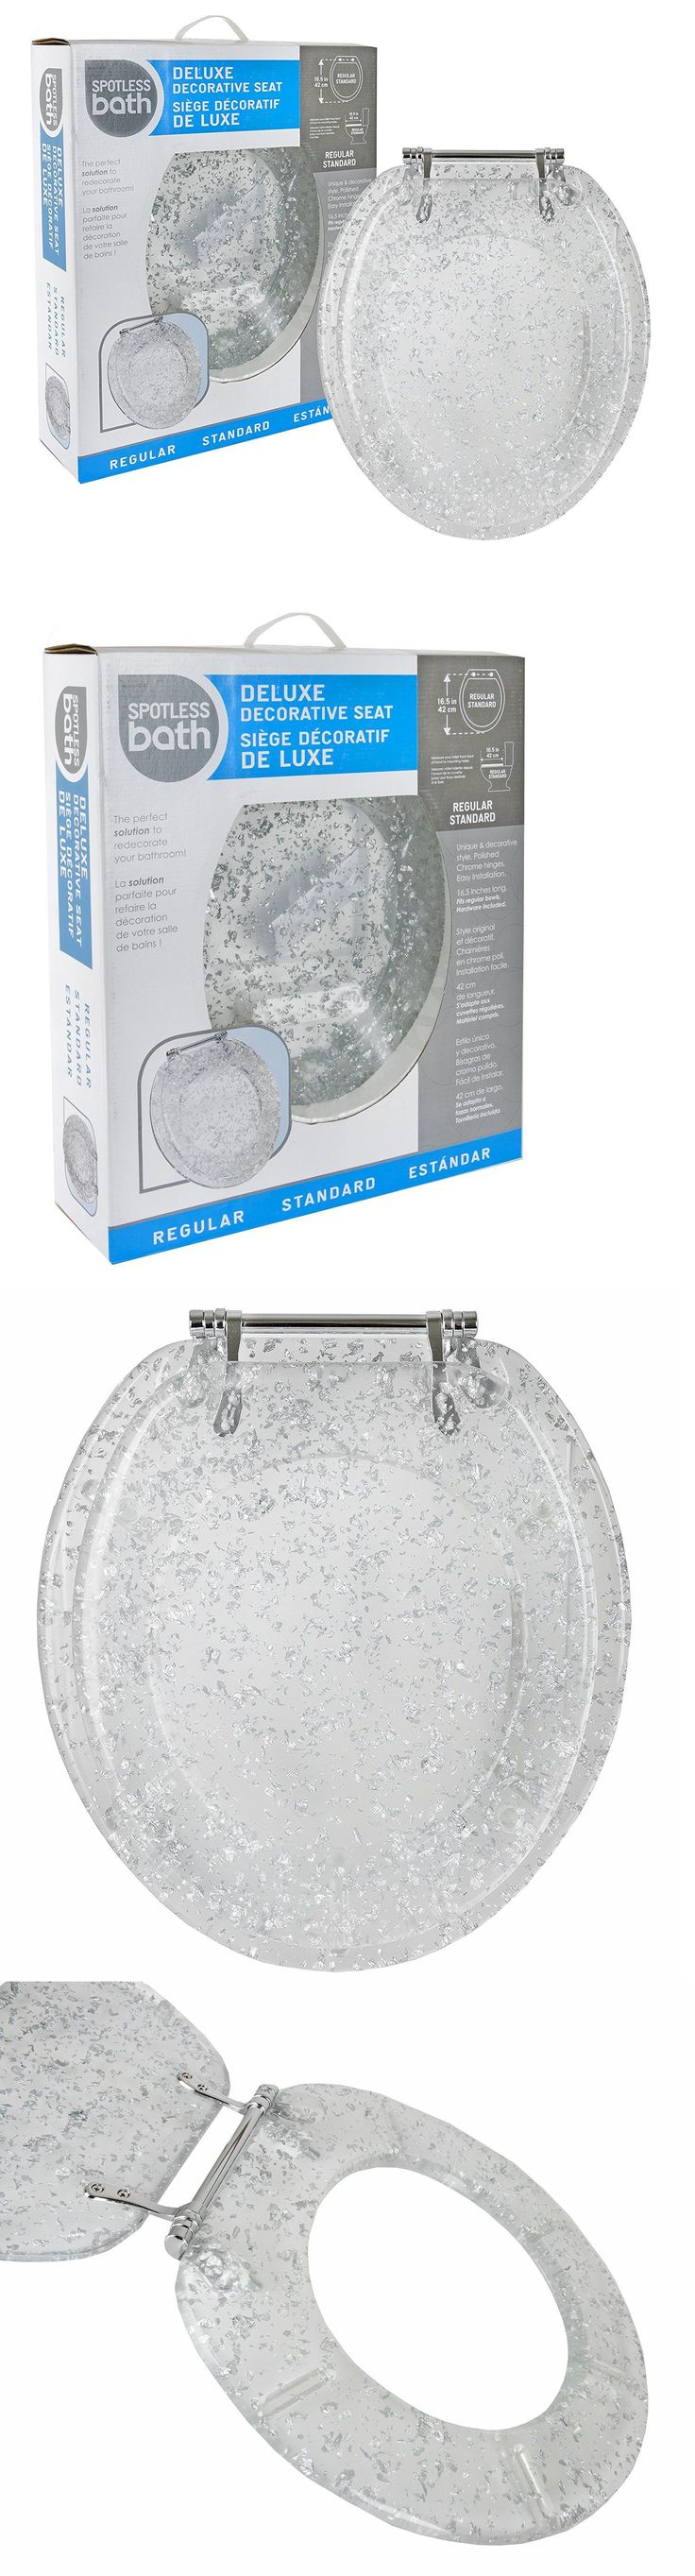 Toilet Seats 37637: Silver Foil Resin Acrylic Toilet Seat, Standard Round With Chrome Hinges -> BUY IT NOW ONLY: $69.99 on eBay!